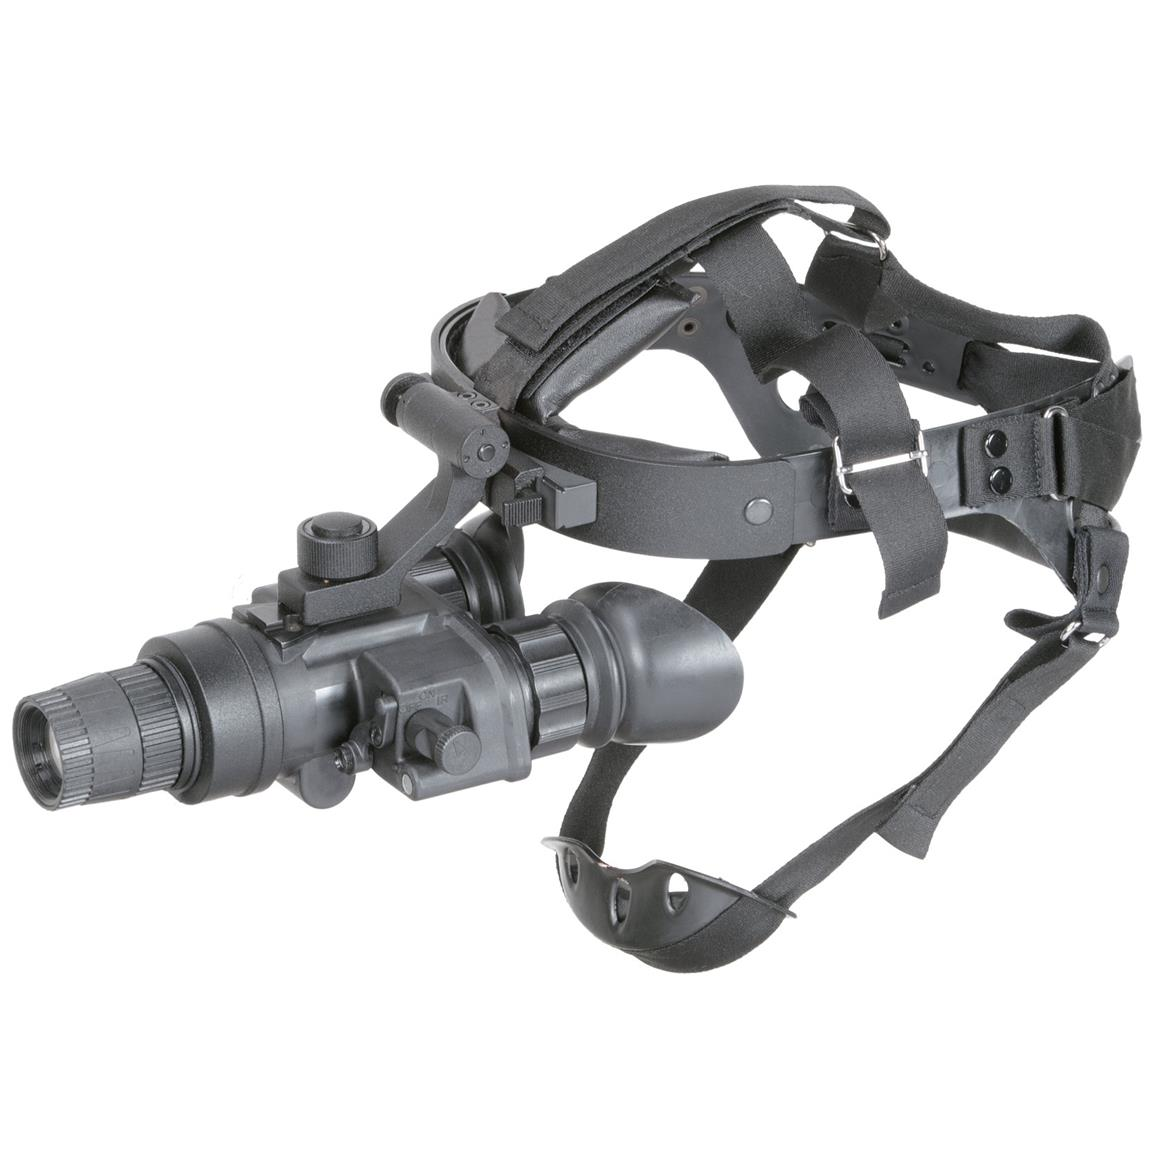 Armasight Nyx7 Pro Gen 3 Alpha MG Night Vision Goggles